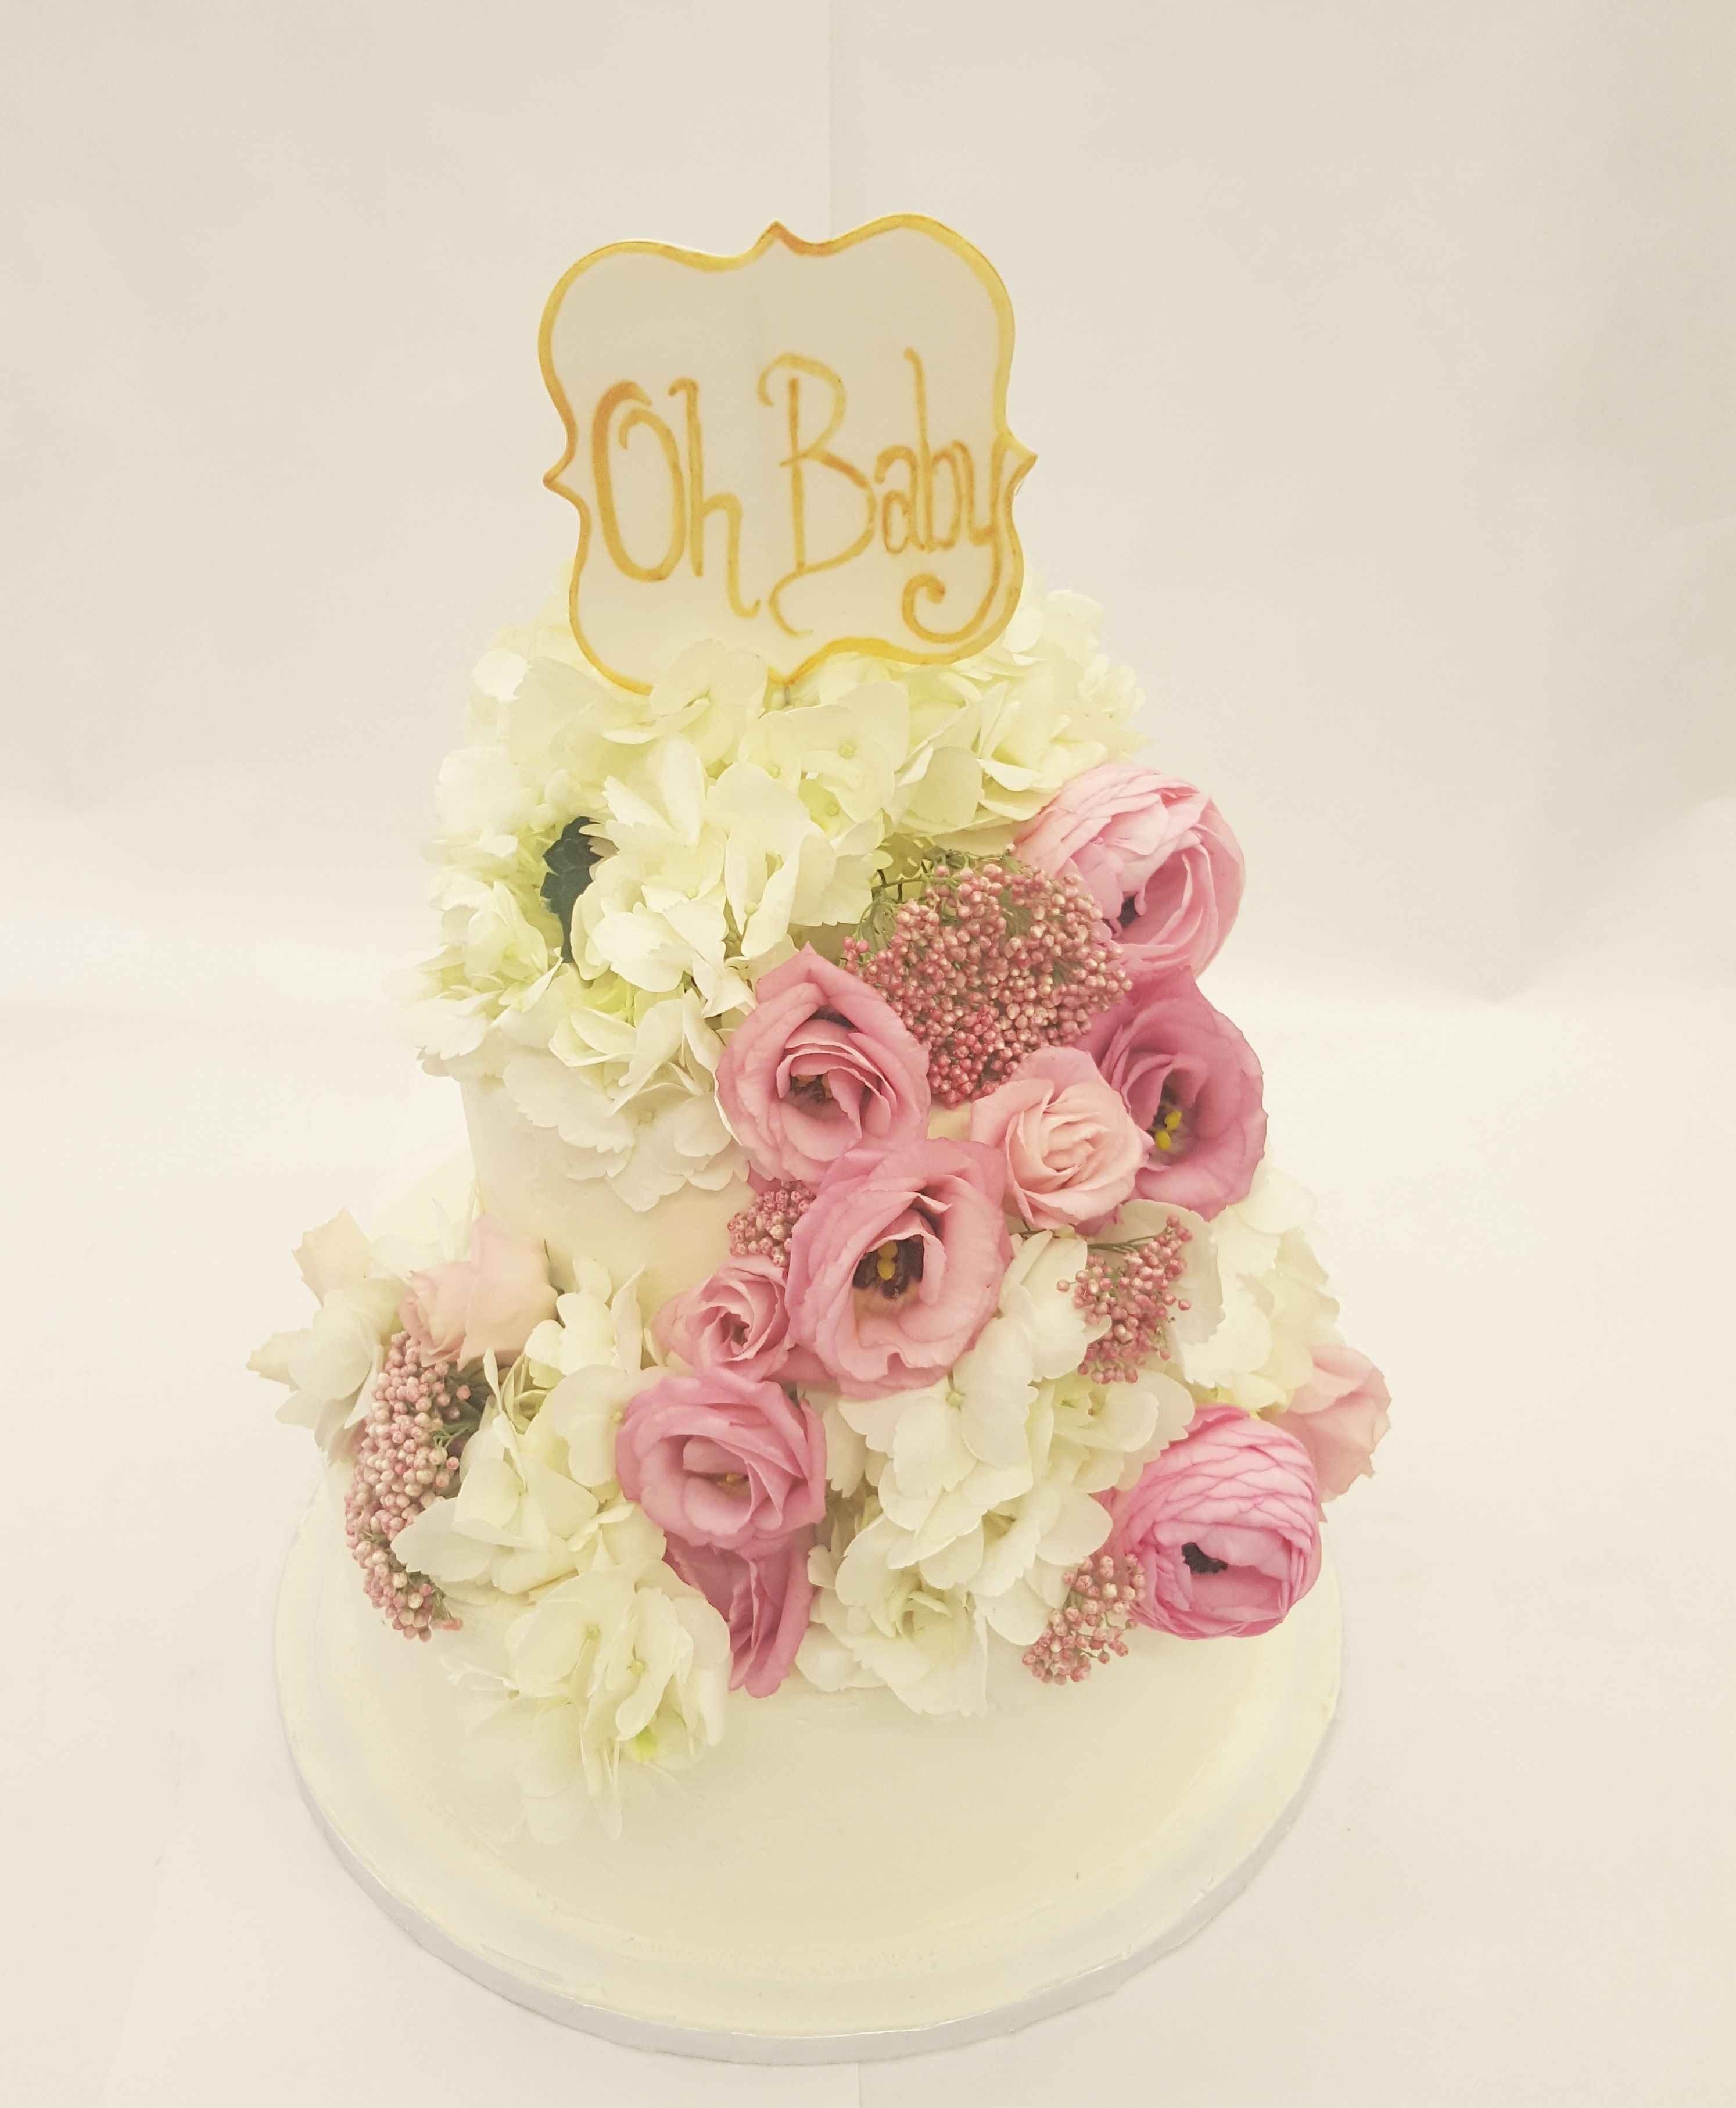 Oh Baby! Is this a beautiful cake. The more fresh flowers the better ...